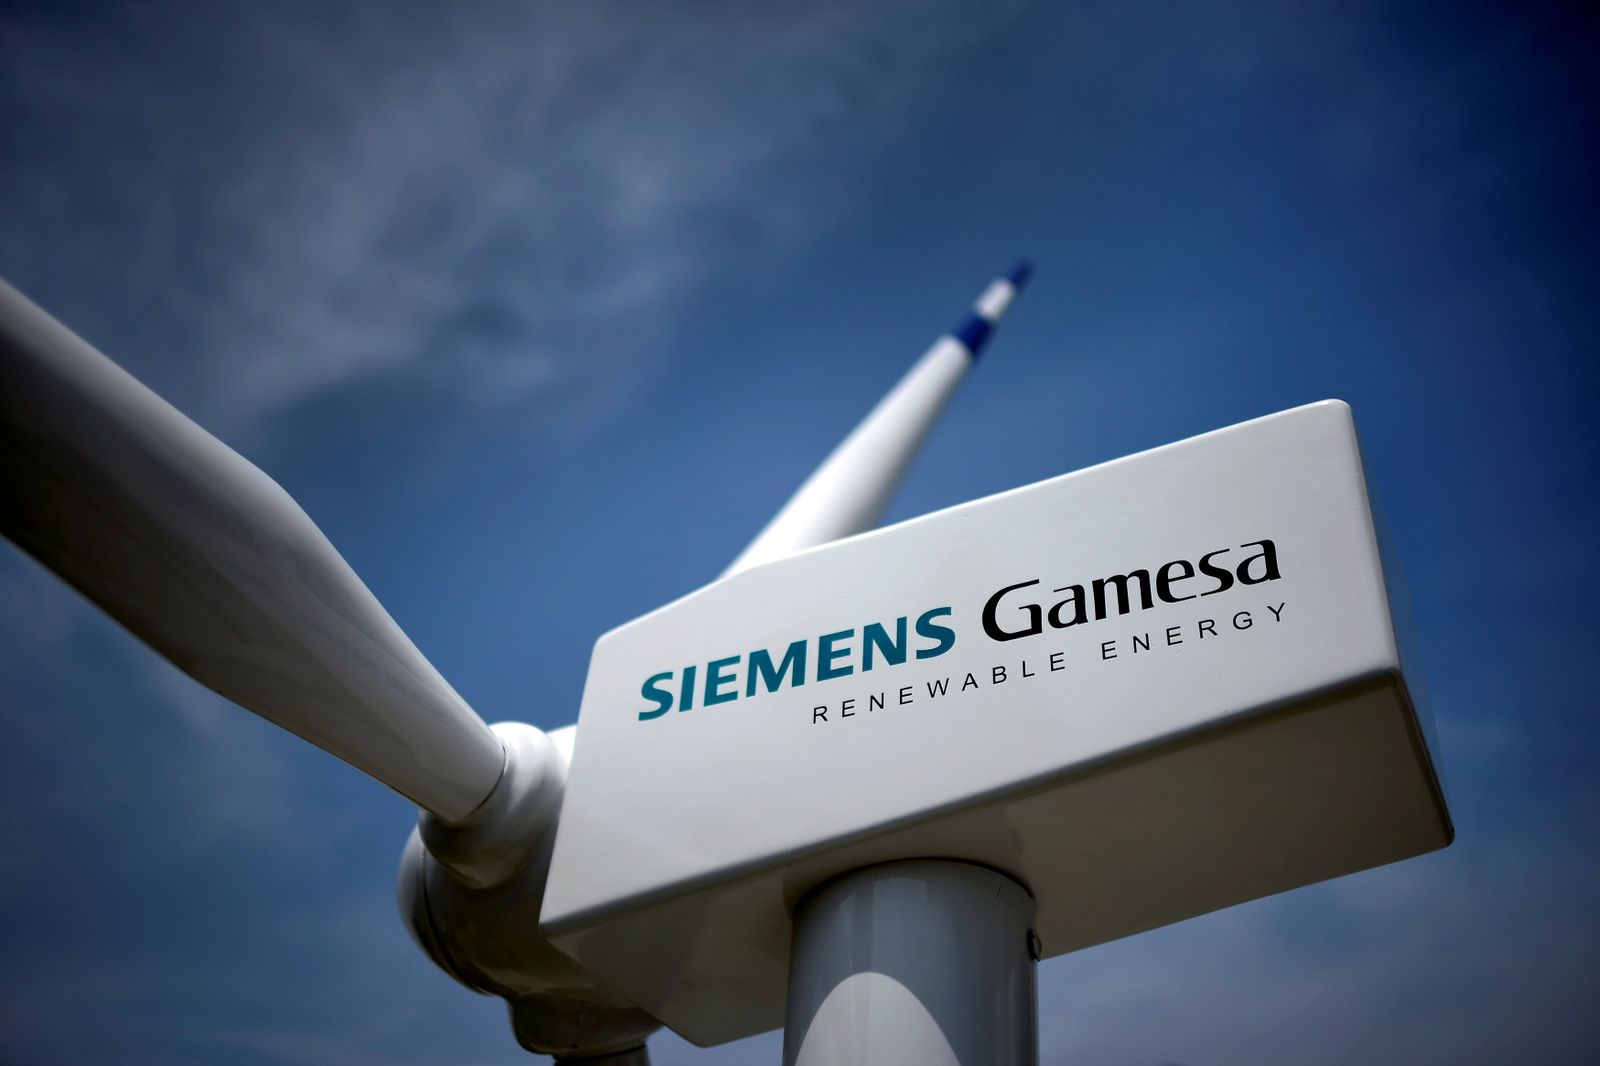 FILE PHOTO: A model of a wind turbine with the Siemens Gamesa logo is displayed outside the annual general shareholders meeting in Zamudio